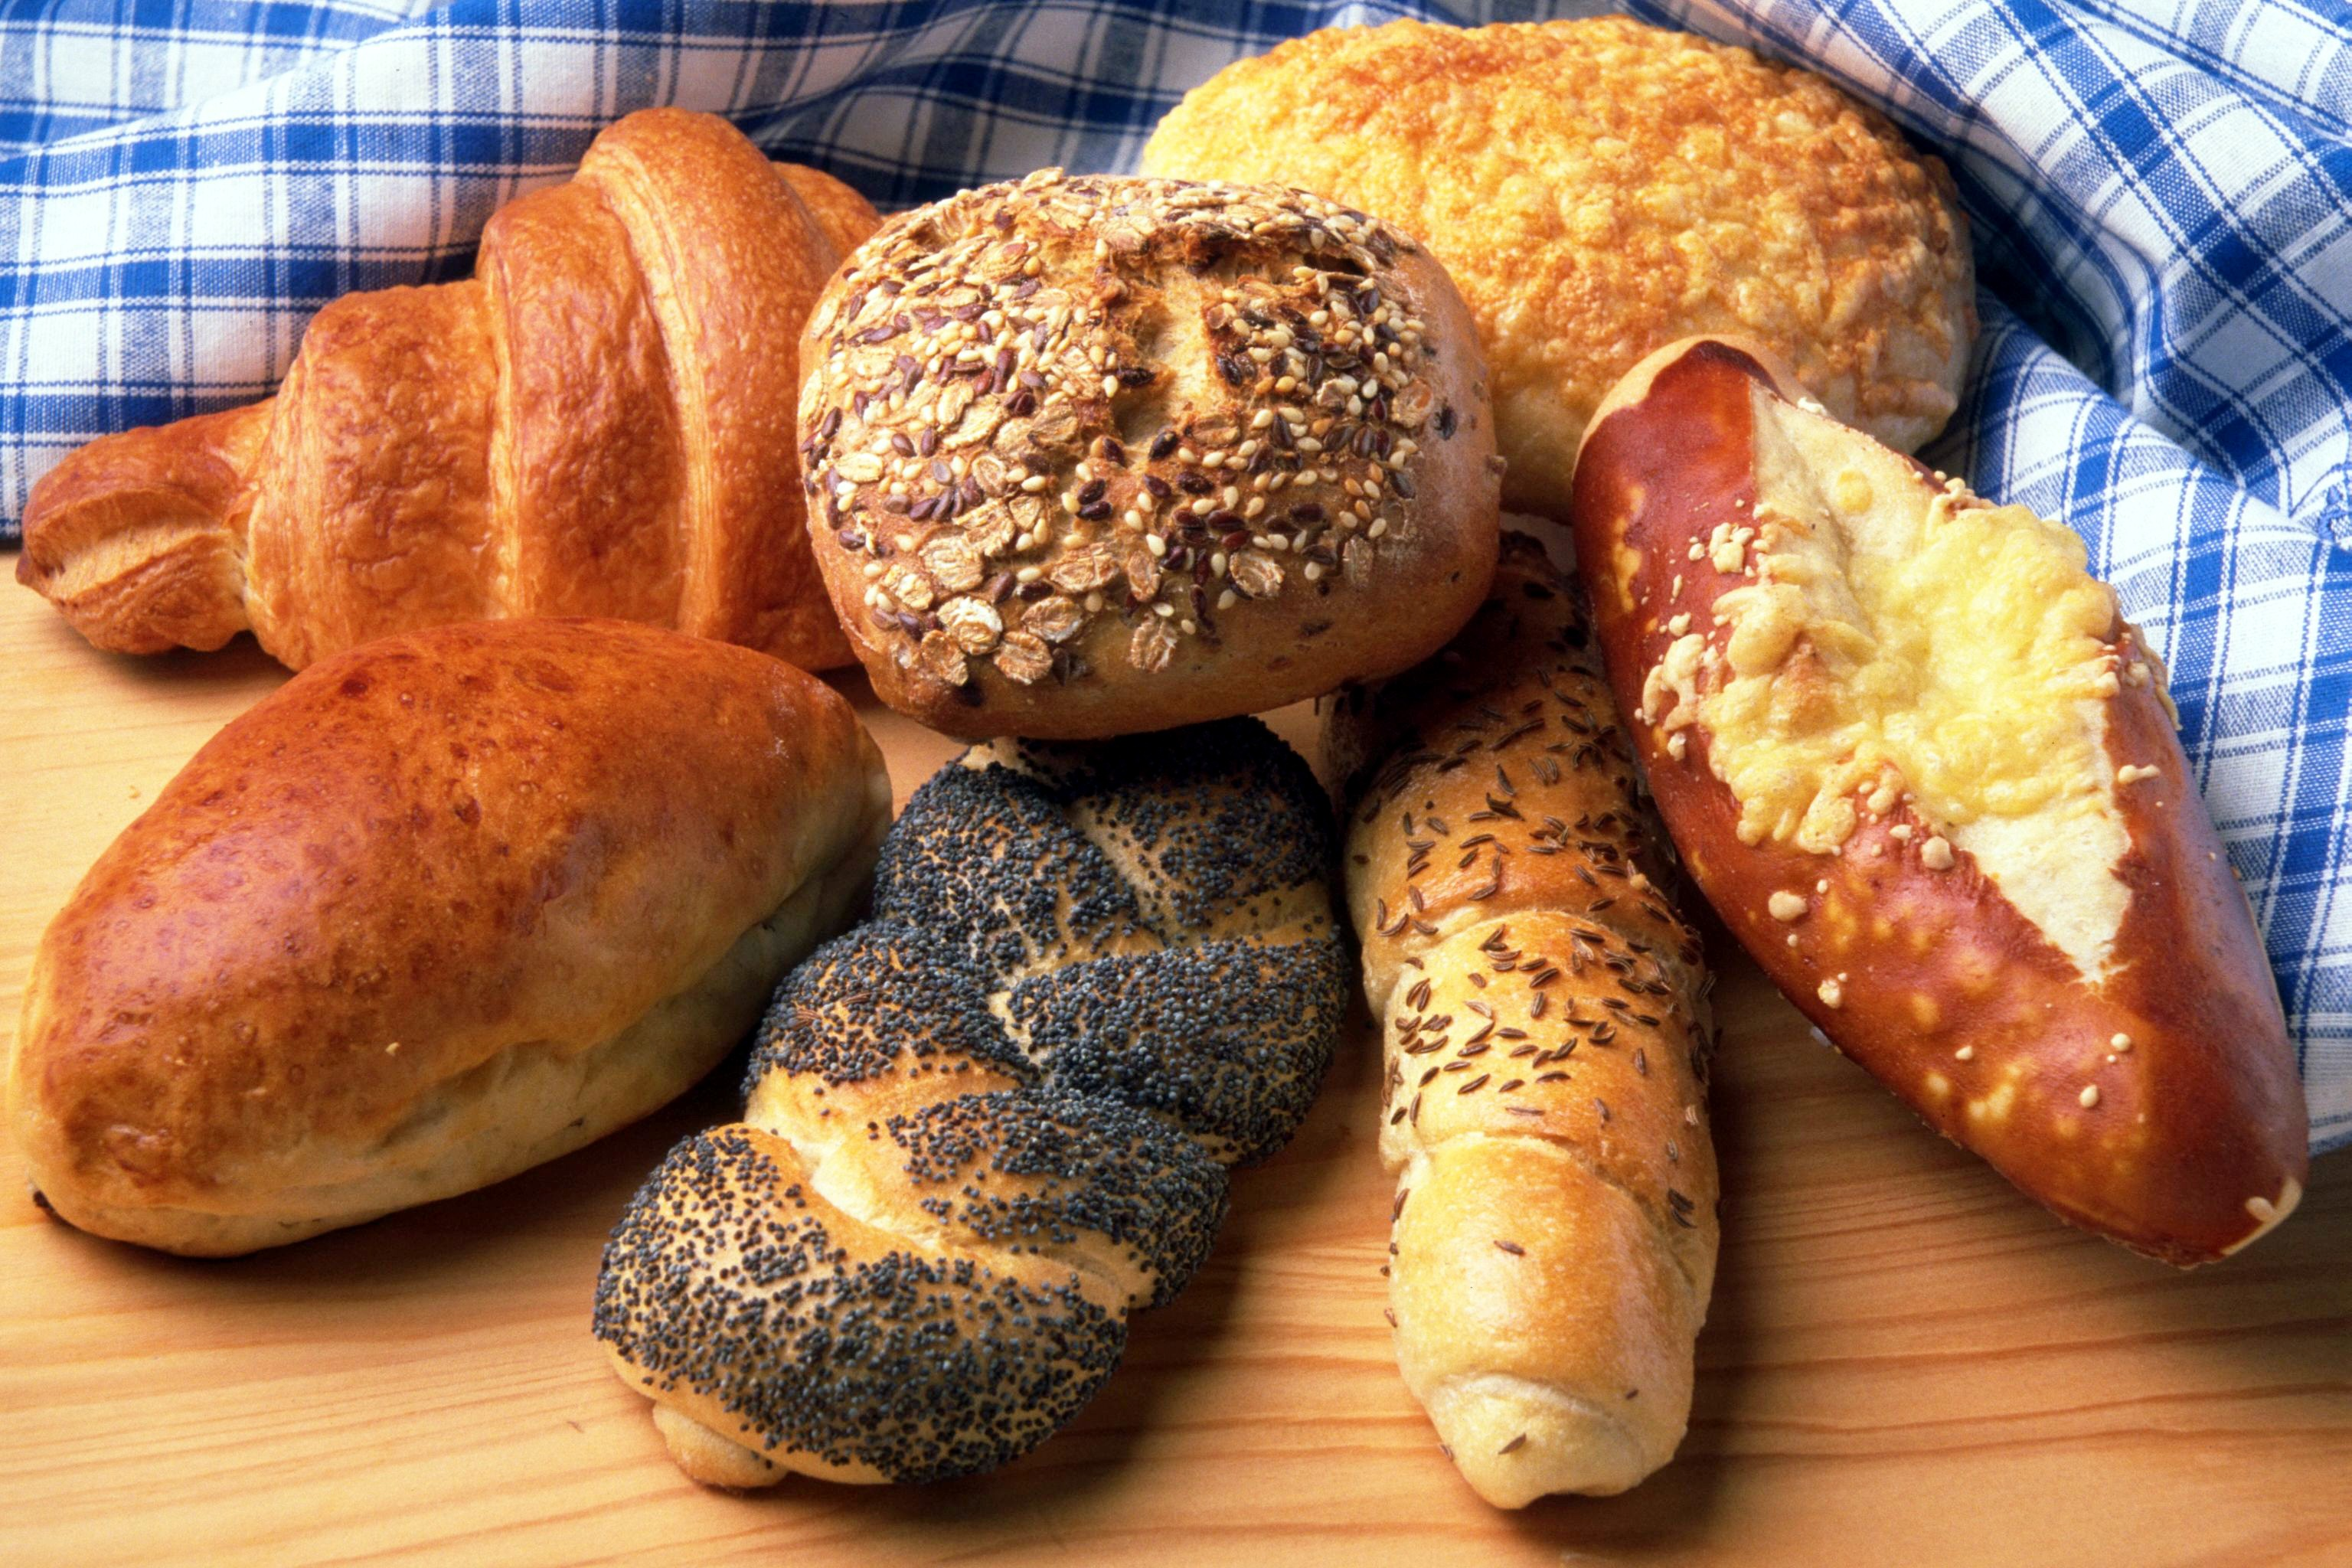 bread-food-healthy-breakfast.jpg (3072×2048)